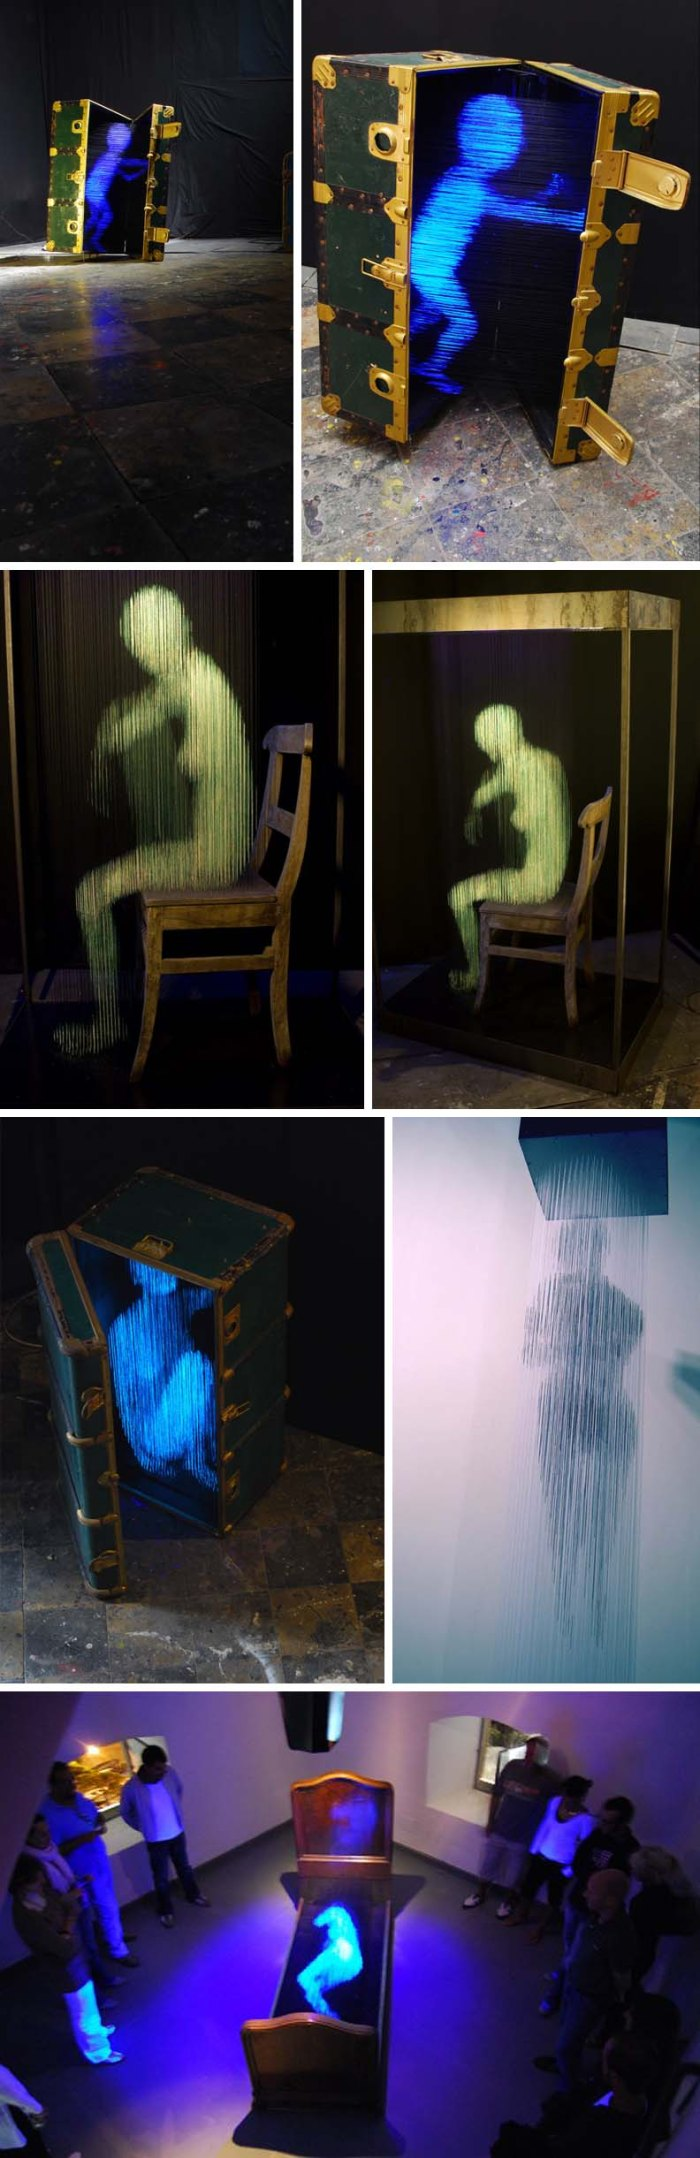 Alessandro Lupi, 3D Light sculptures, Fluorescent Densities, backlit threads, cool art